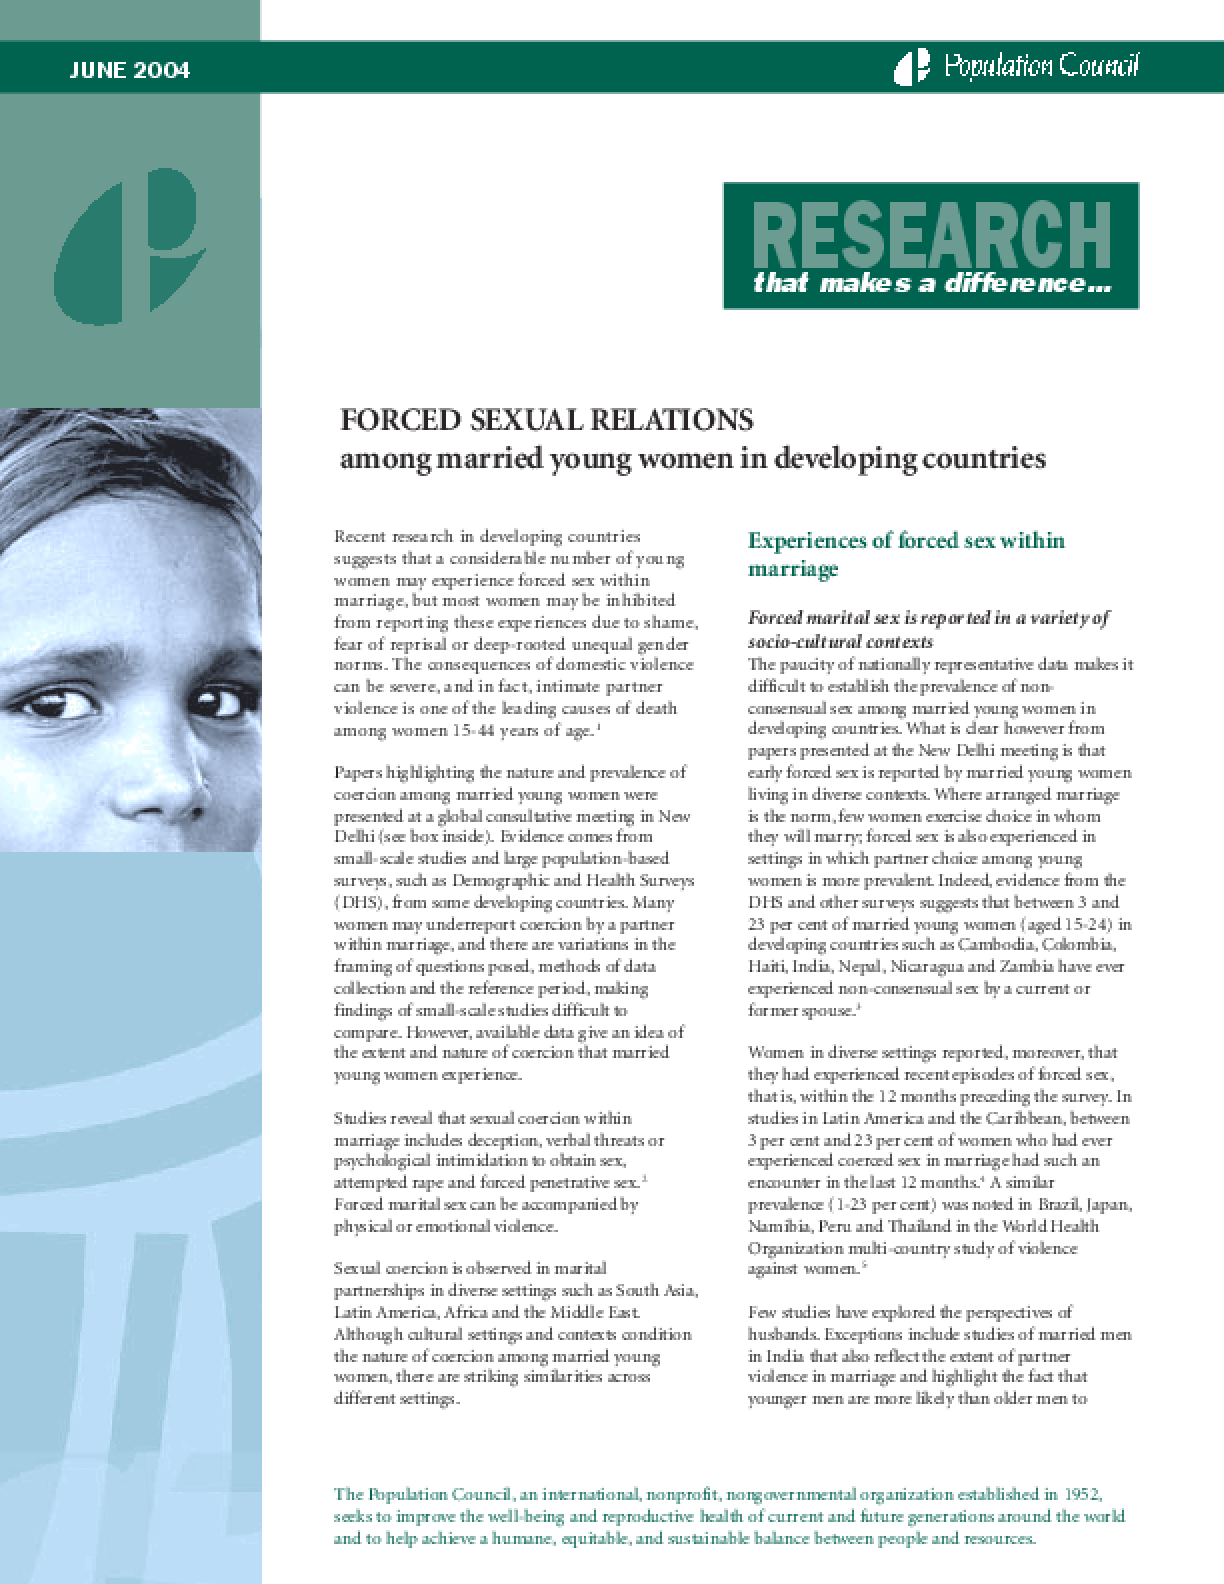 Forced Sexual Relations Among Young Women in Developing Countries